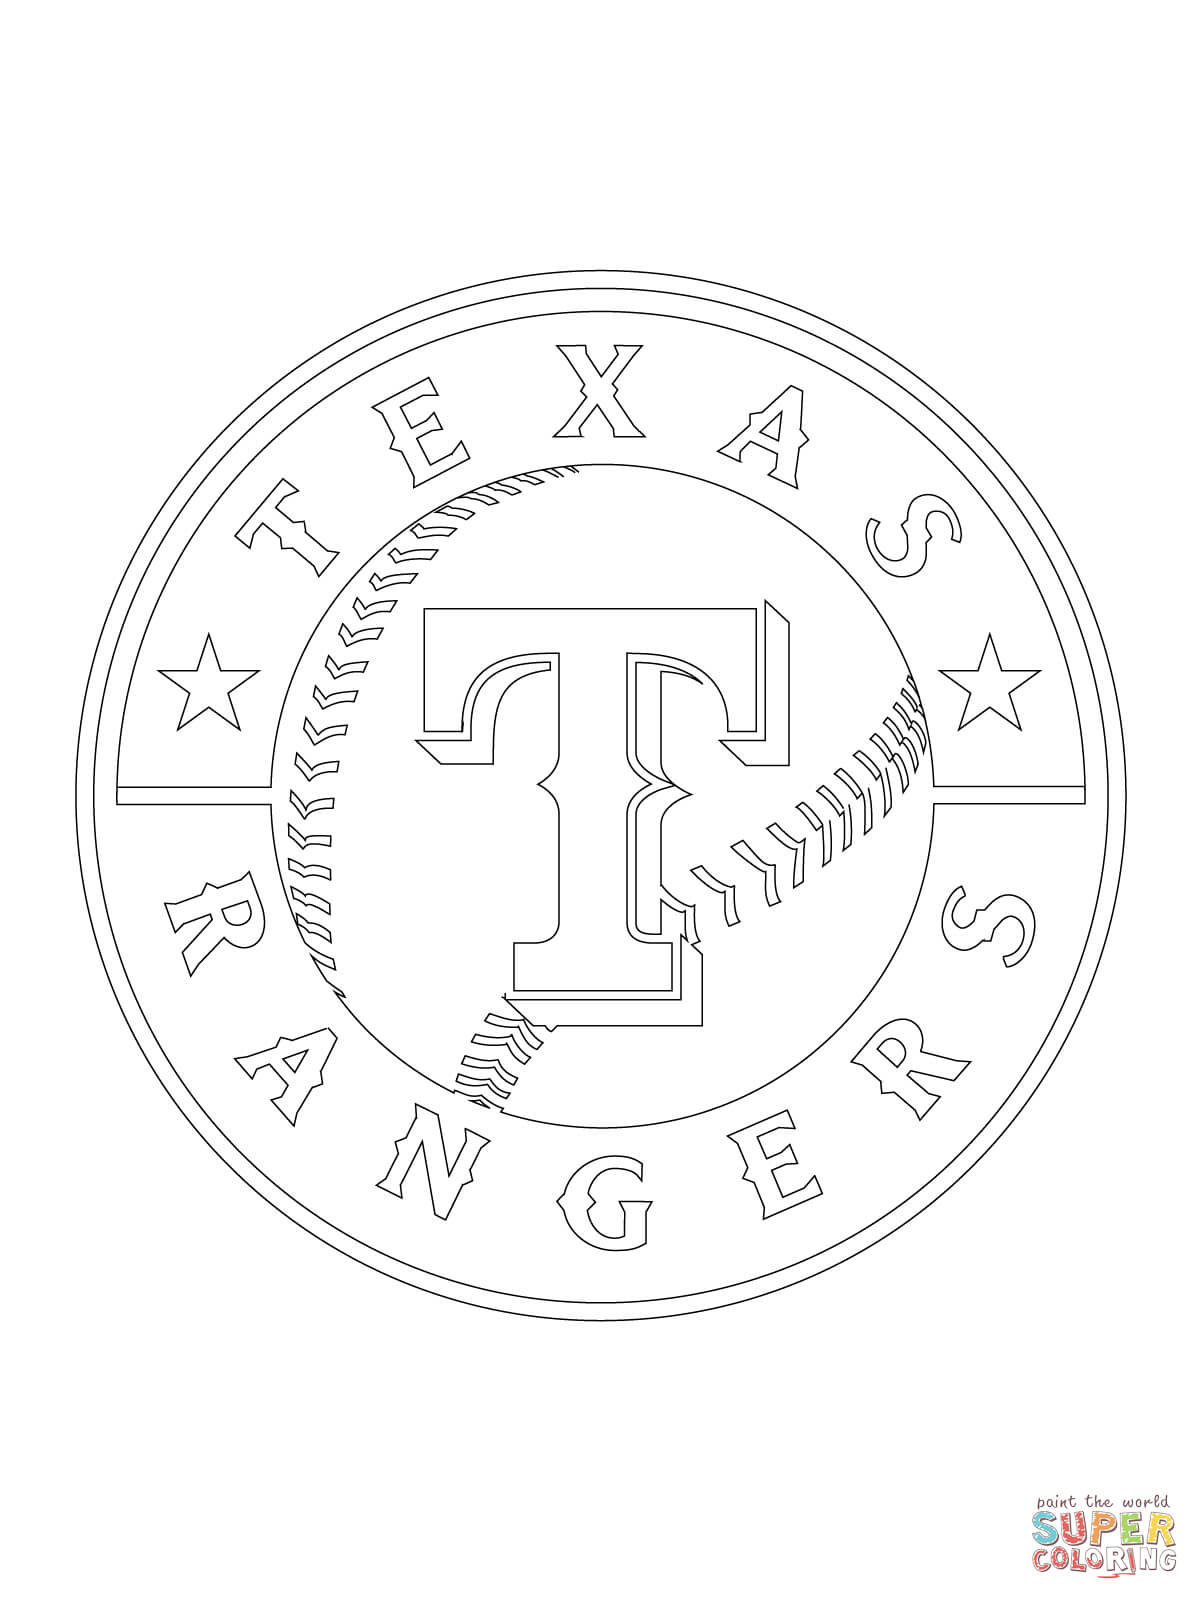 Texas Rangers Logo Coloring Page to Print Of Perspective Texas Tech Coloring Pages Page to Print